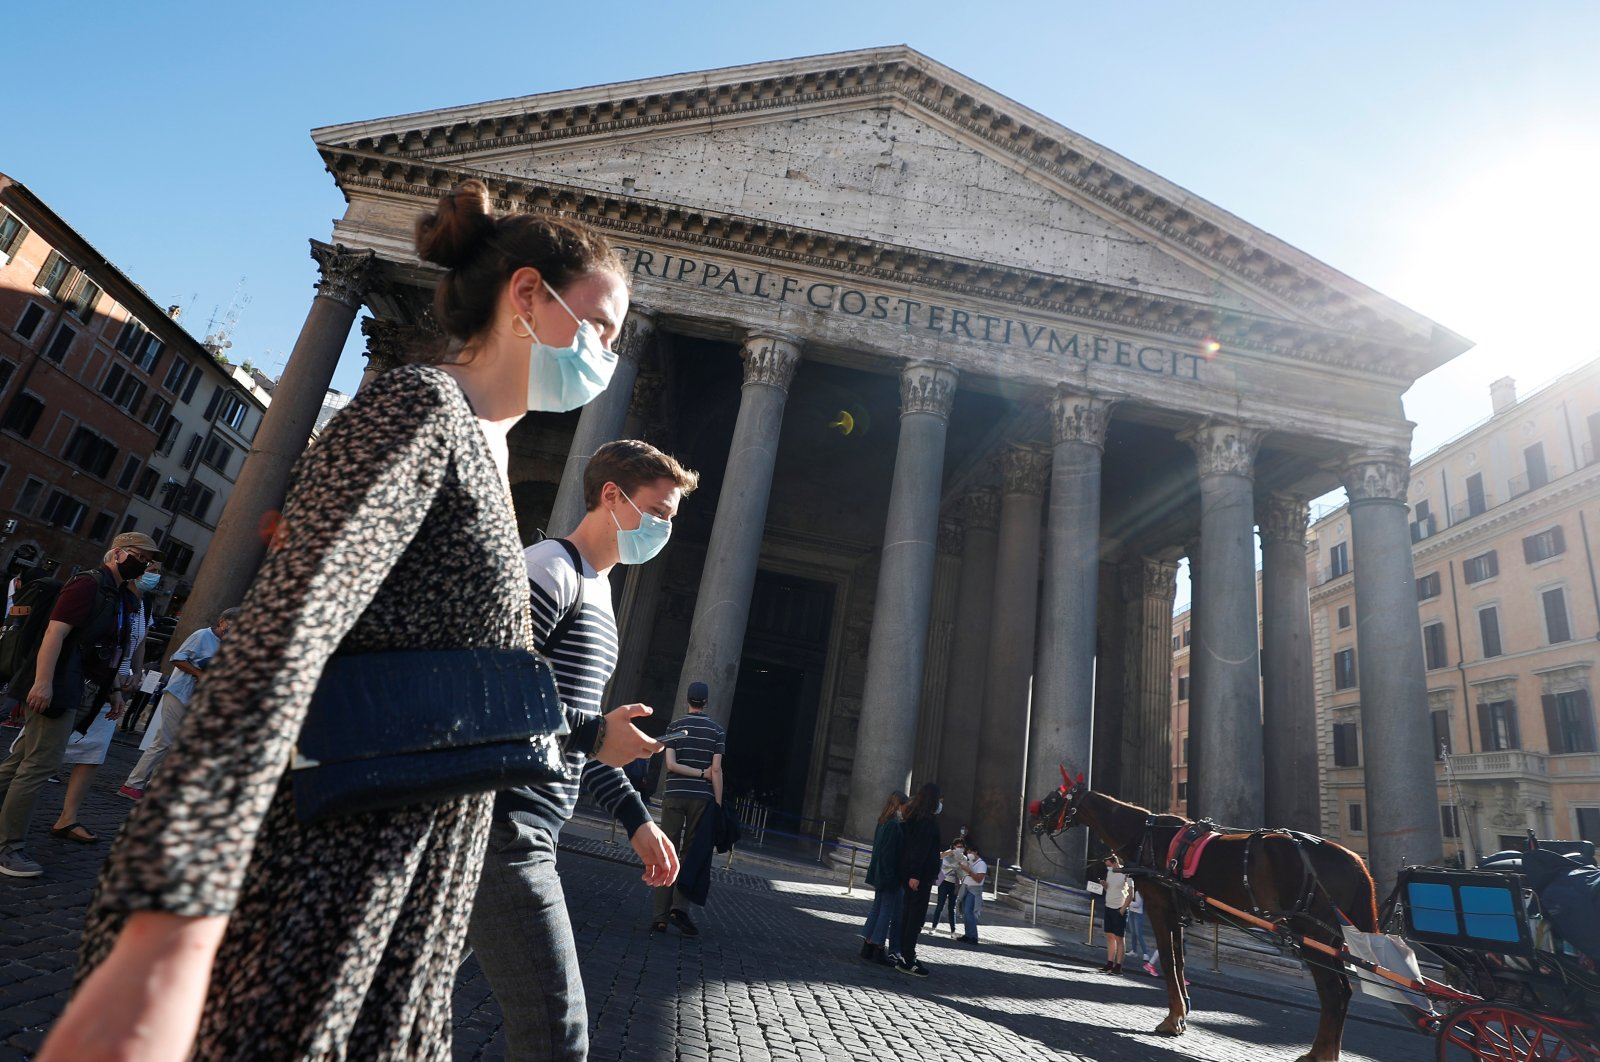 People wearing protective masks walk past the Pantheon as local authorities in the Italian capital Rome ordered face coverings to be worn at all times outdoors, in an effort to counter the spread of COVID-19, in Rome, Italy, Oct. 8, 2020. (Reuters Photo)